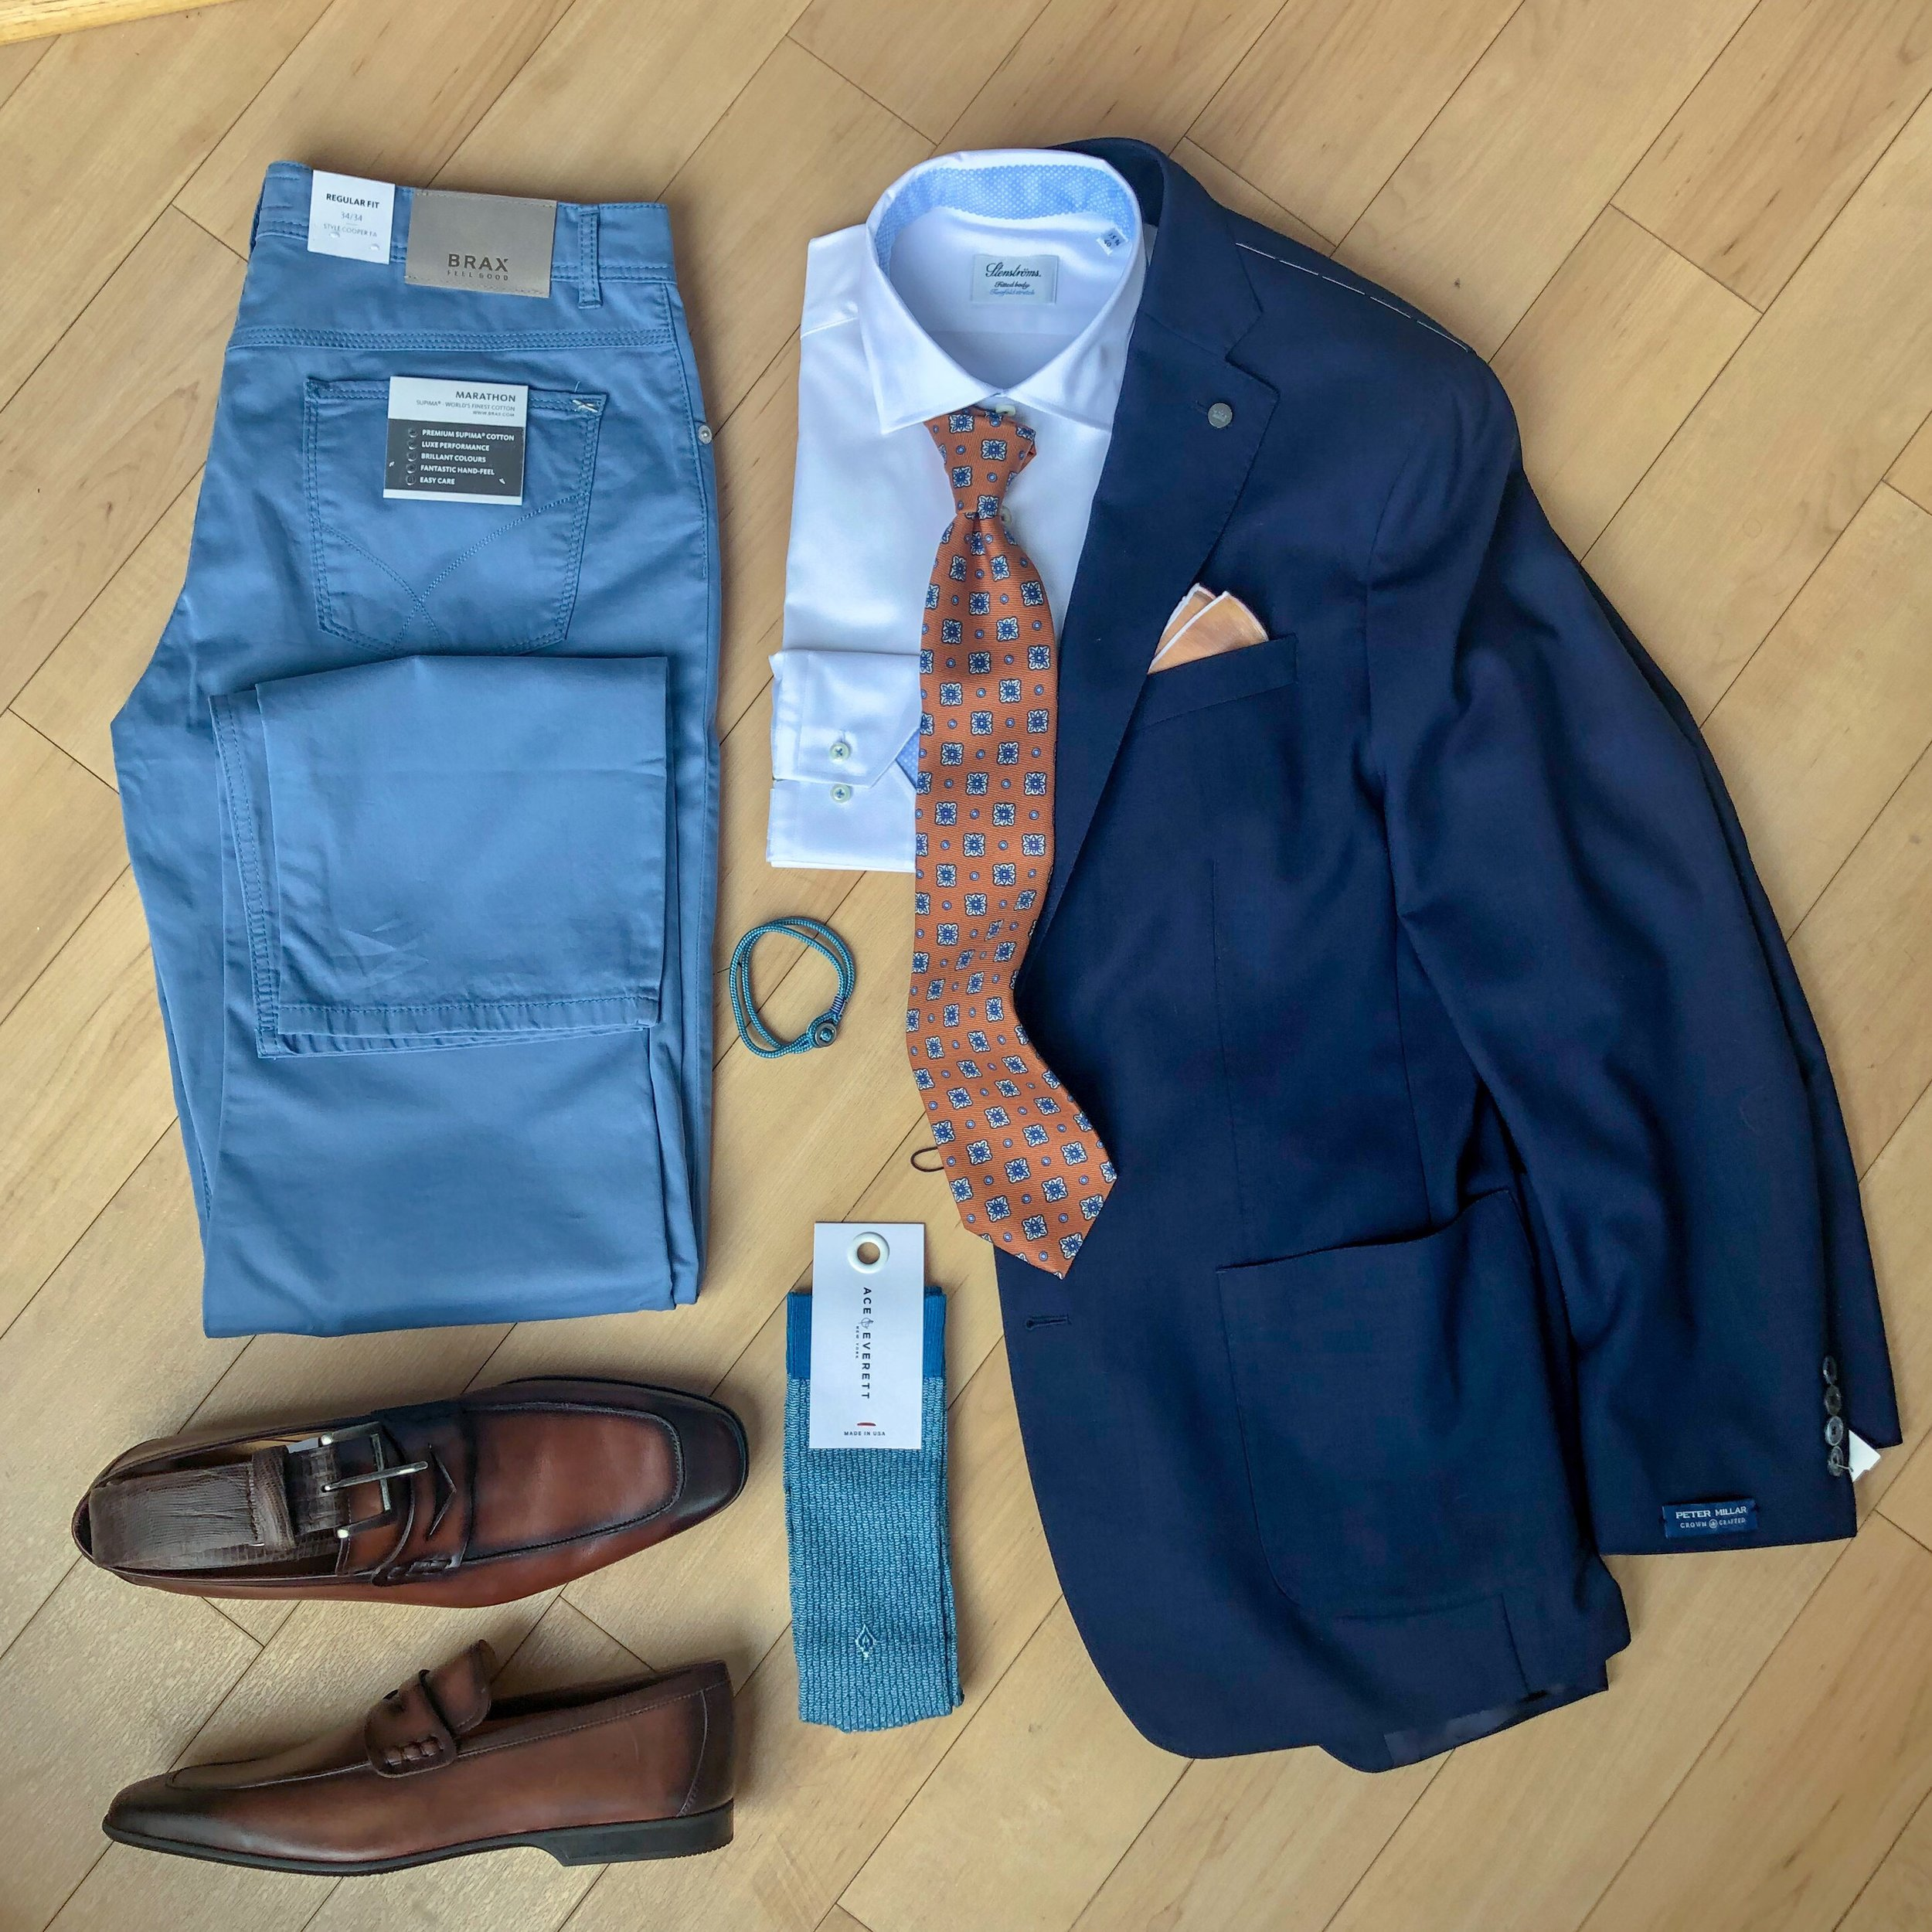 Add Some Color To Your Denim Wardrobe - Surprise everyone at the office with a pop of color. Brax colored denim paired with your favorite navy blazer and a Magnanni loafer will have you working with confidence and style.